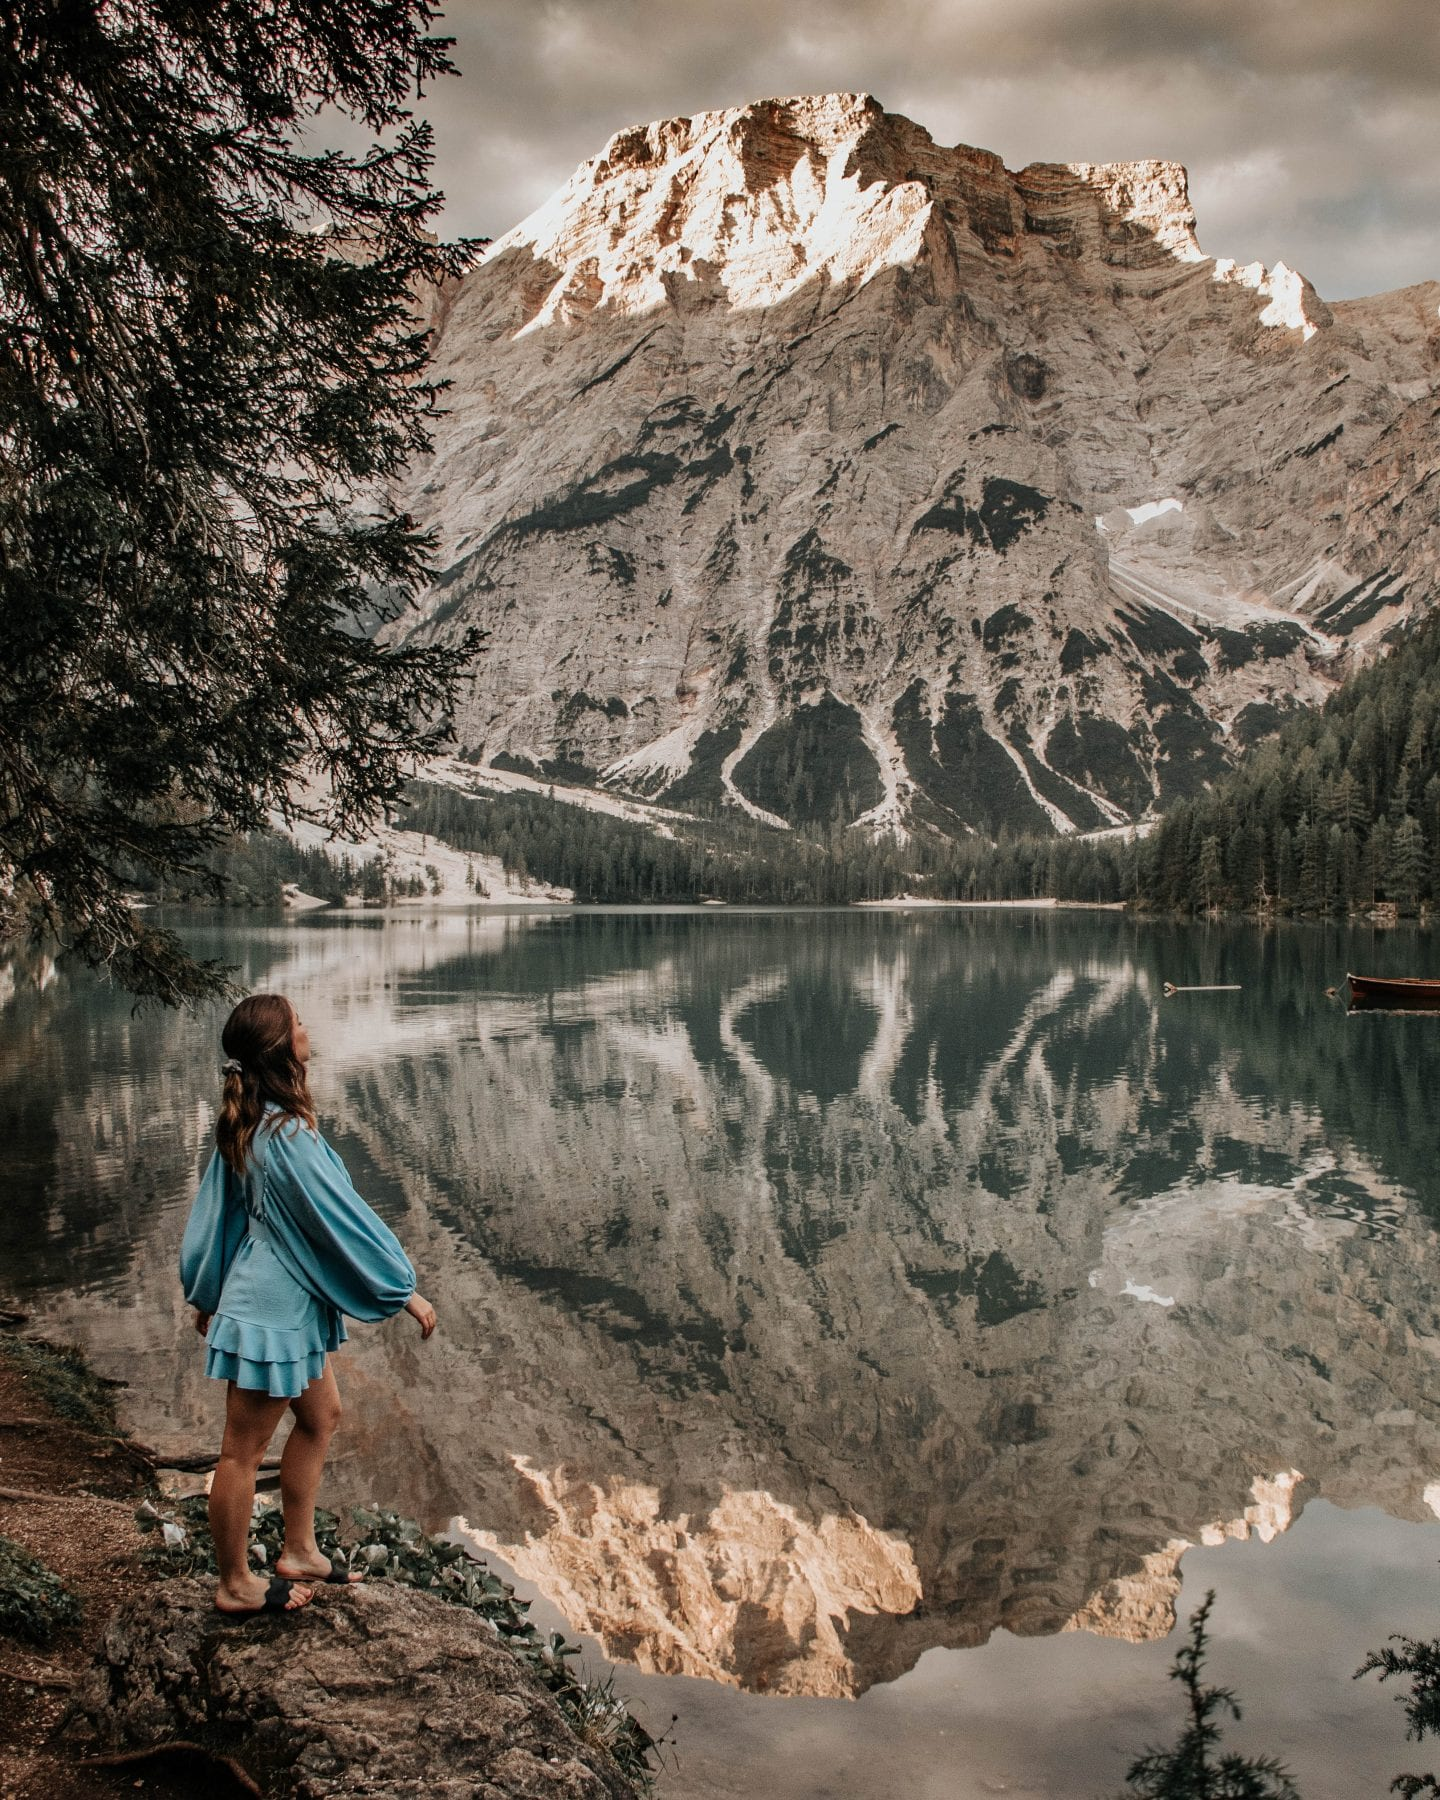 The Best Tips for Visiting Lago di Braies: The Most Beautiful Lake in the Dolomites